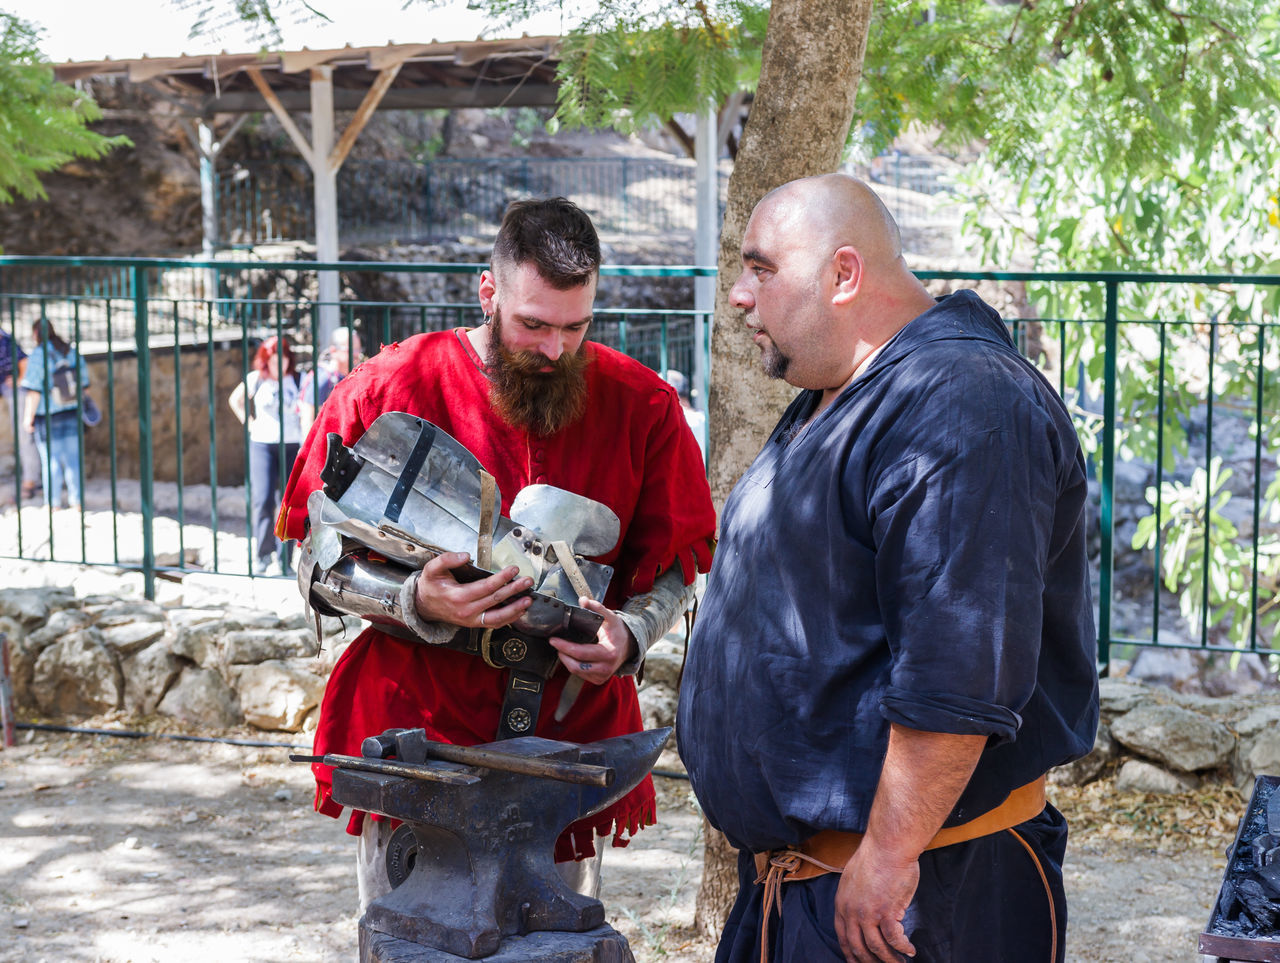 """Jerusalem, Israel, October 03, 2016: Members of the annual festival of """"Knights of Jerusalem"""" repairing armor in Jerusalem, Israel Ancient Annual Attraction Christian Citizen Decorations Dressed Event Famous Festival History Holy Israel Jerusalem Knight  Land Medieval Member Old Performance Performs Photographer Pose Sword Tradition"""